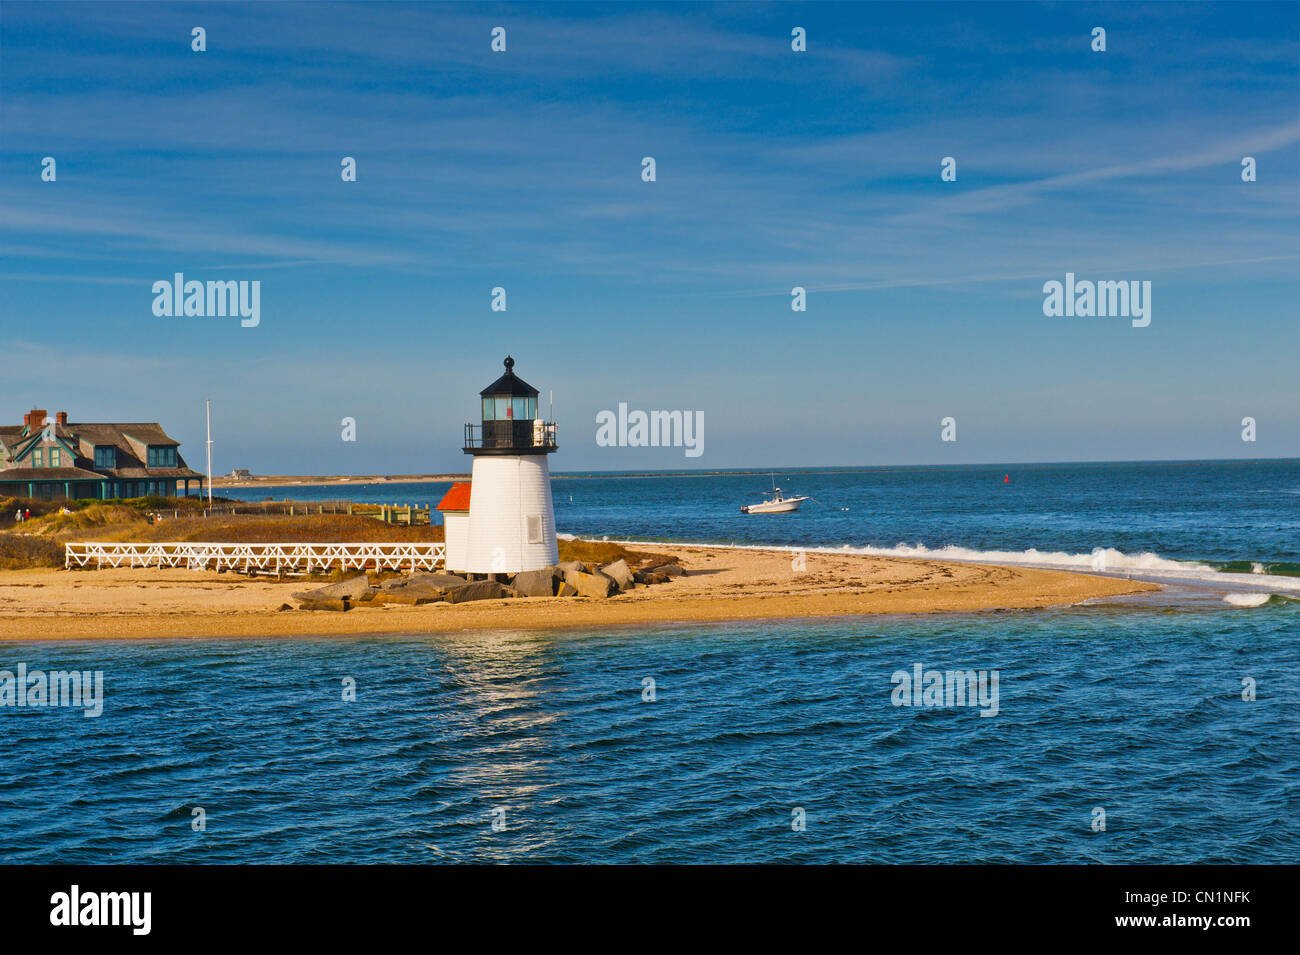 brant-point-lighthouse-in-nantucket-harb